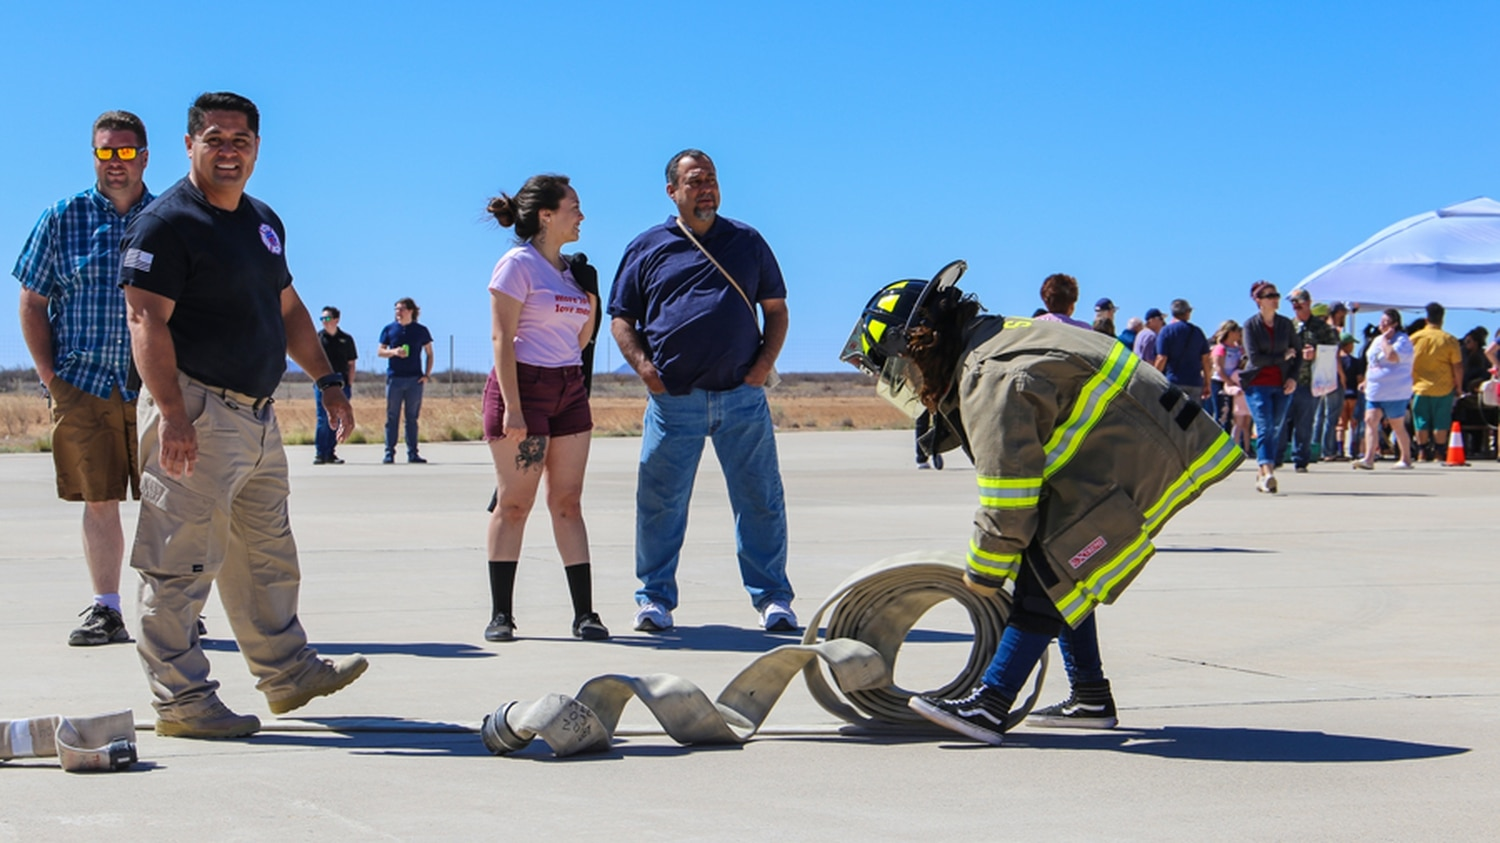 Child rolls out firehose at Space Festival